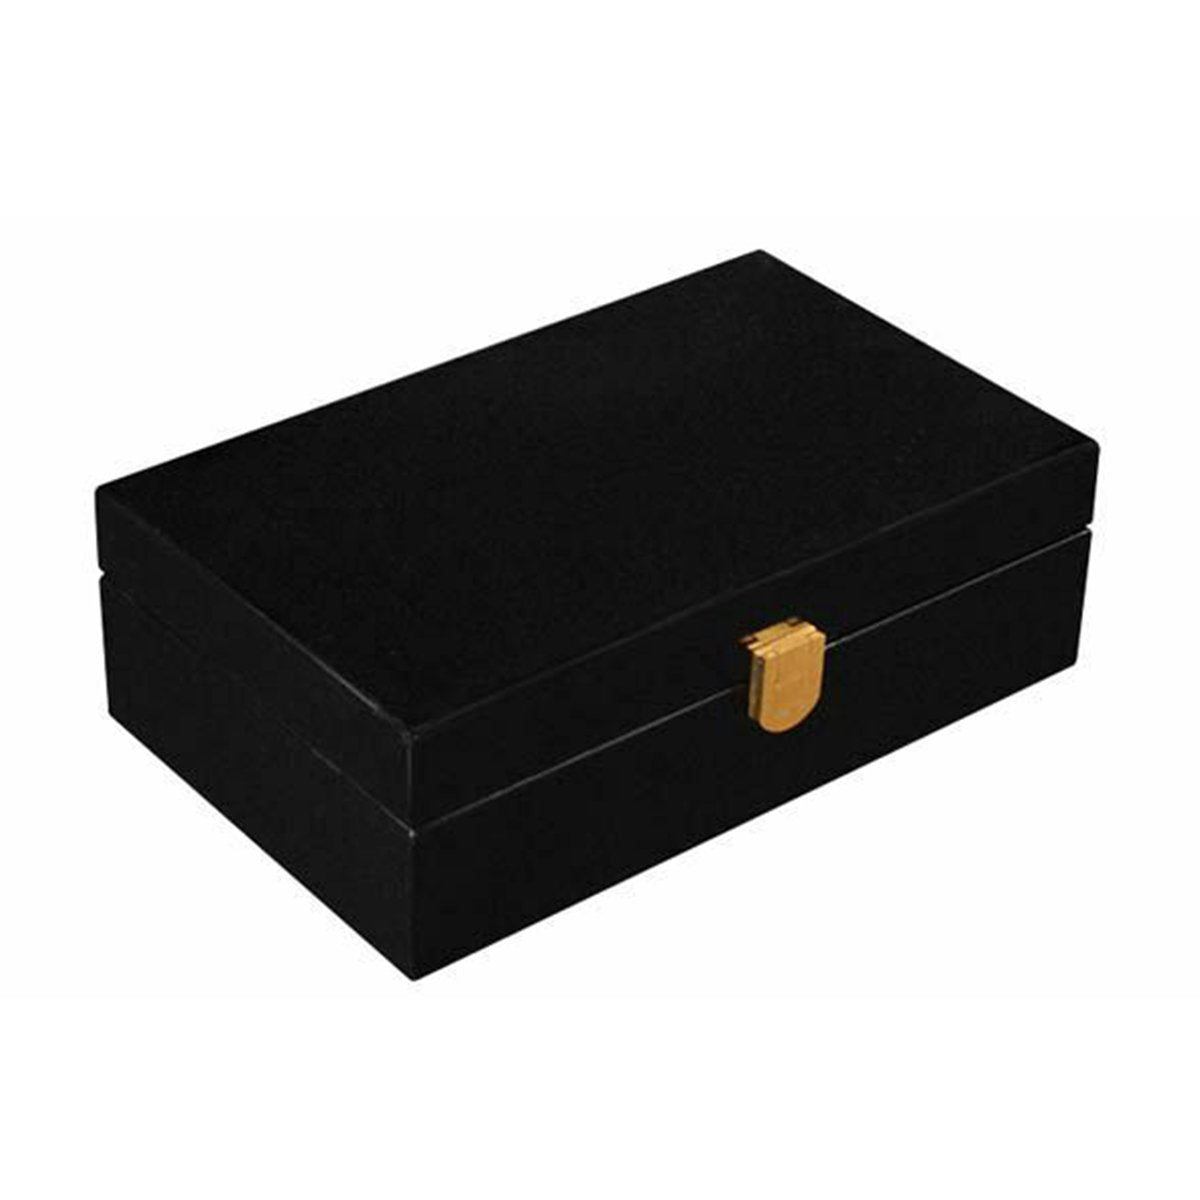 Small Humidor Black Traveler Humidor for 12 Cigars